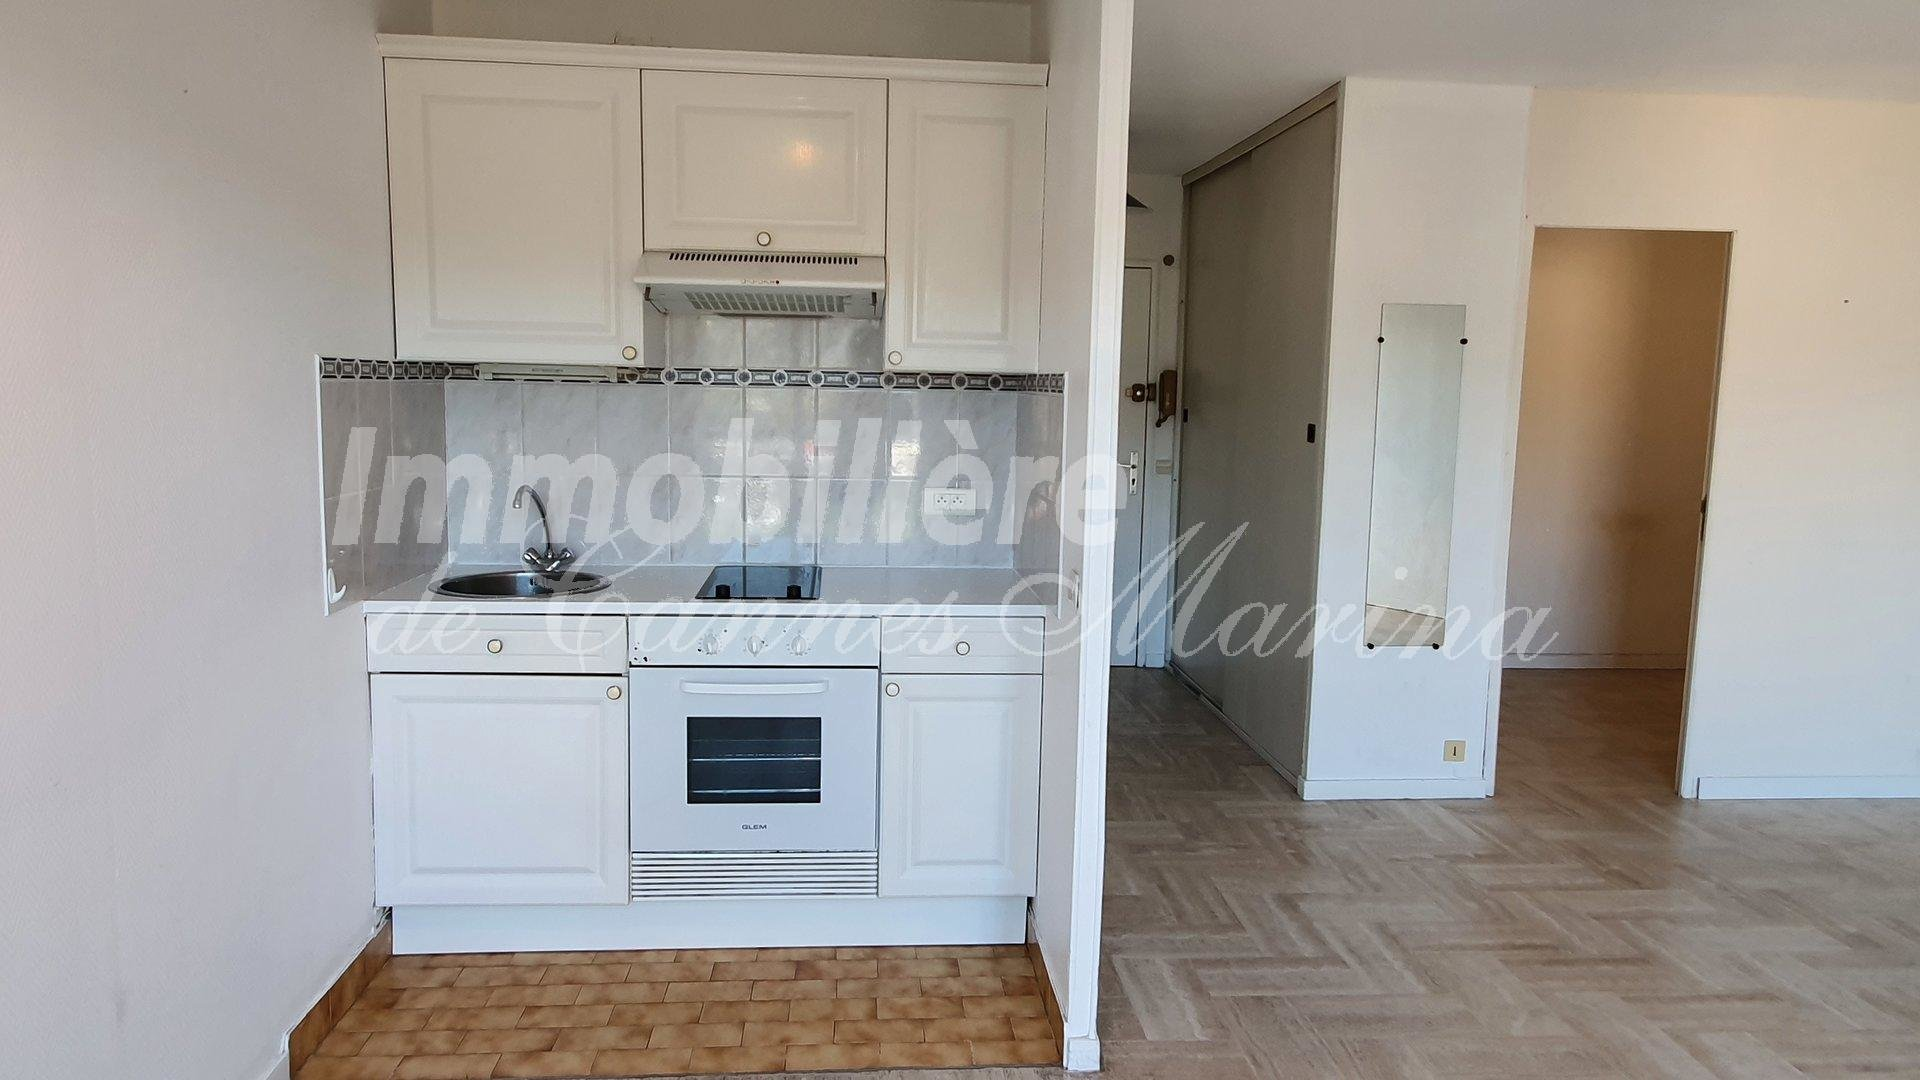 ApartmentStage 9, Vue Panoramic, General condition Good, Kitchen Fitted, Heating Collective, Hot water ...